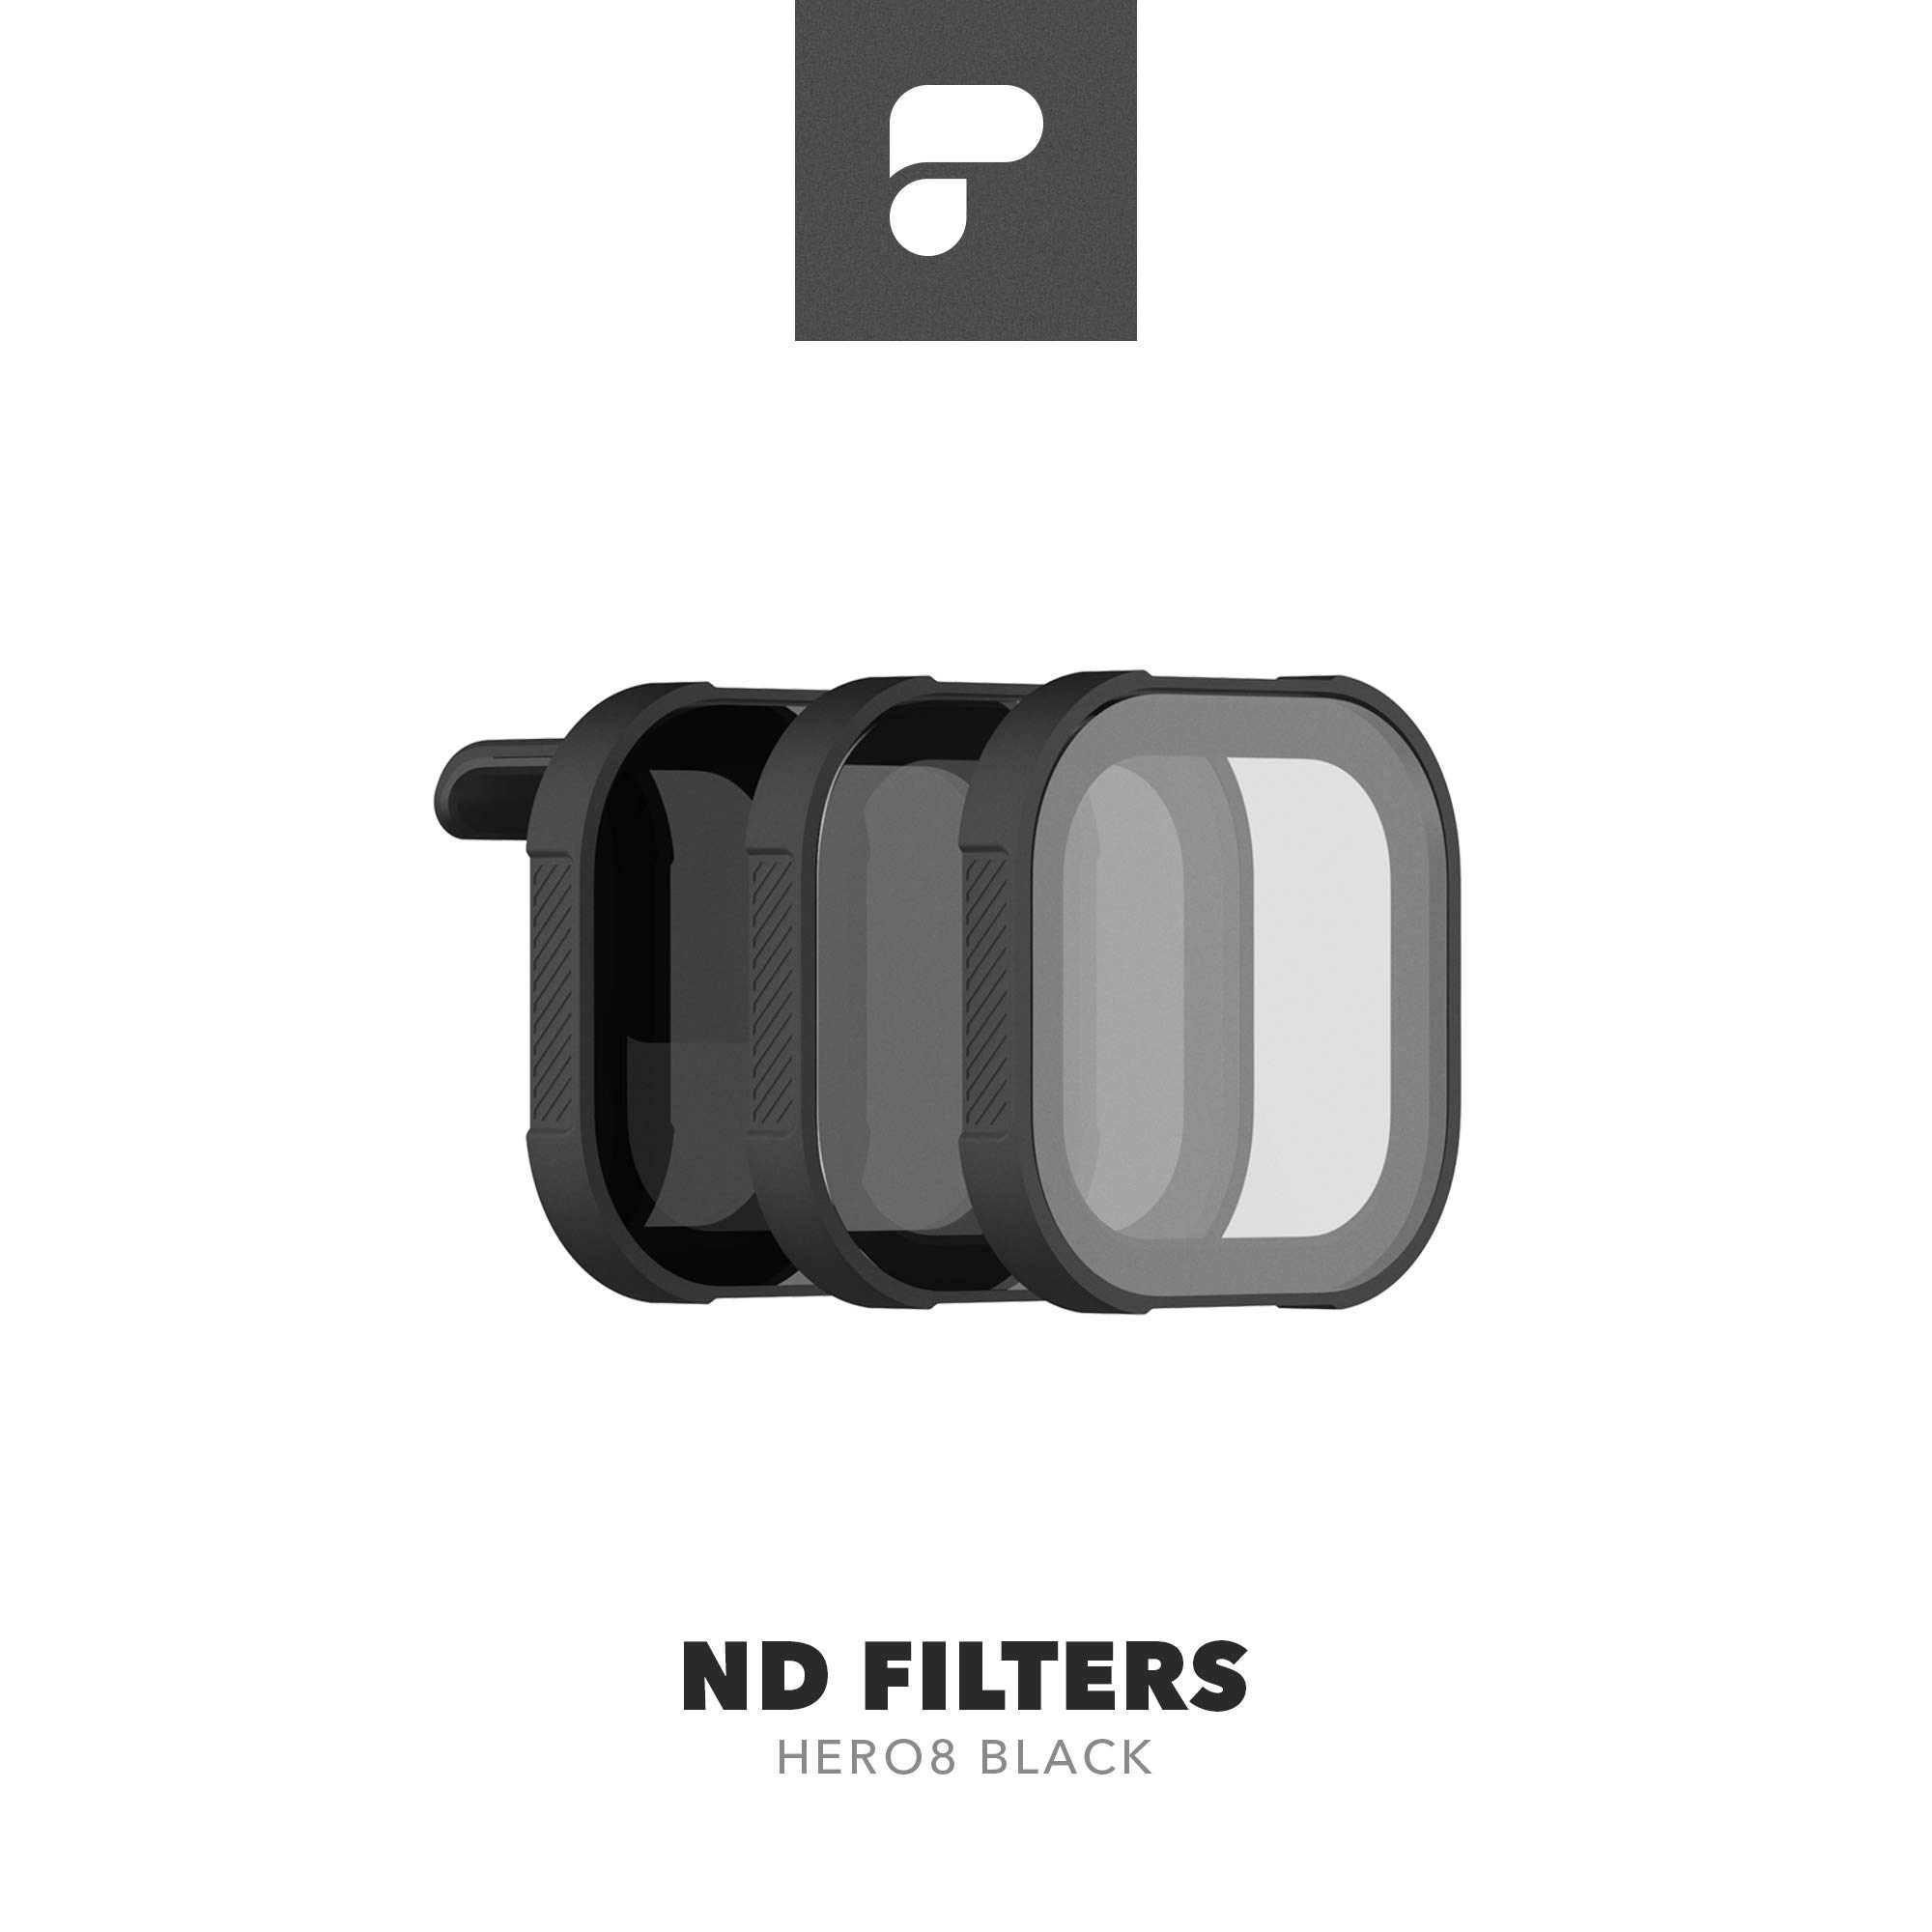 PolarPro ND Filter 3-Pack for GoPro Hero8 Black (Shutter Collection ND8/16/32) by PolarPro